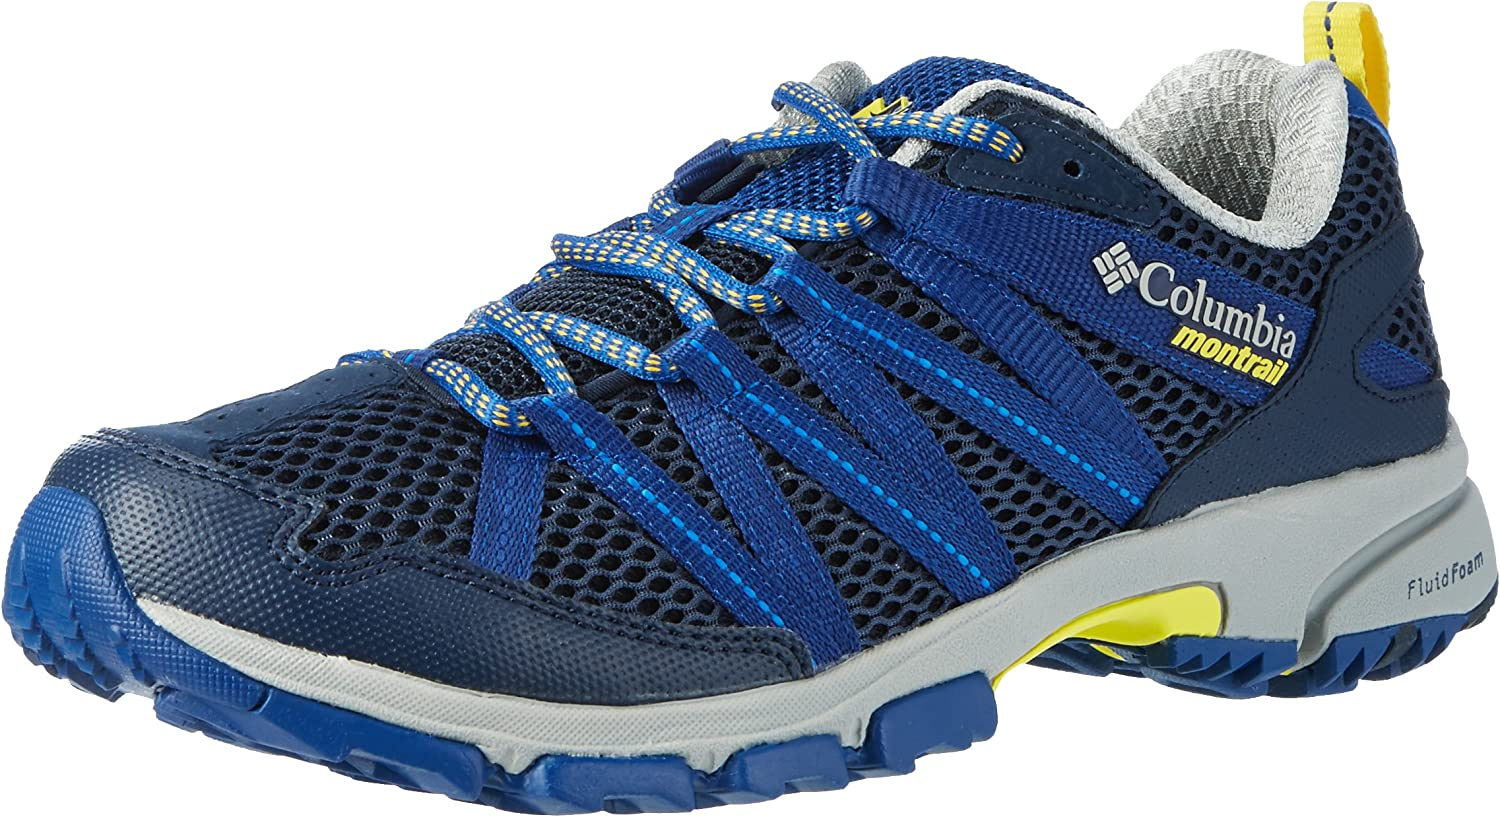 Columbia Montrail Men s Mountain Masochist Iii Trail Runner